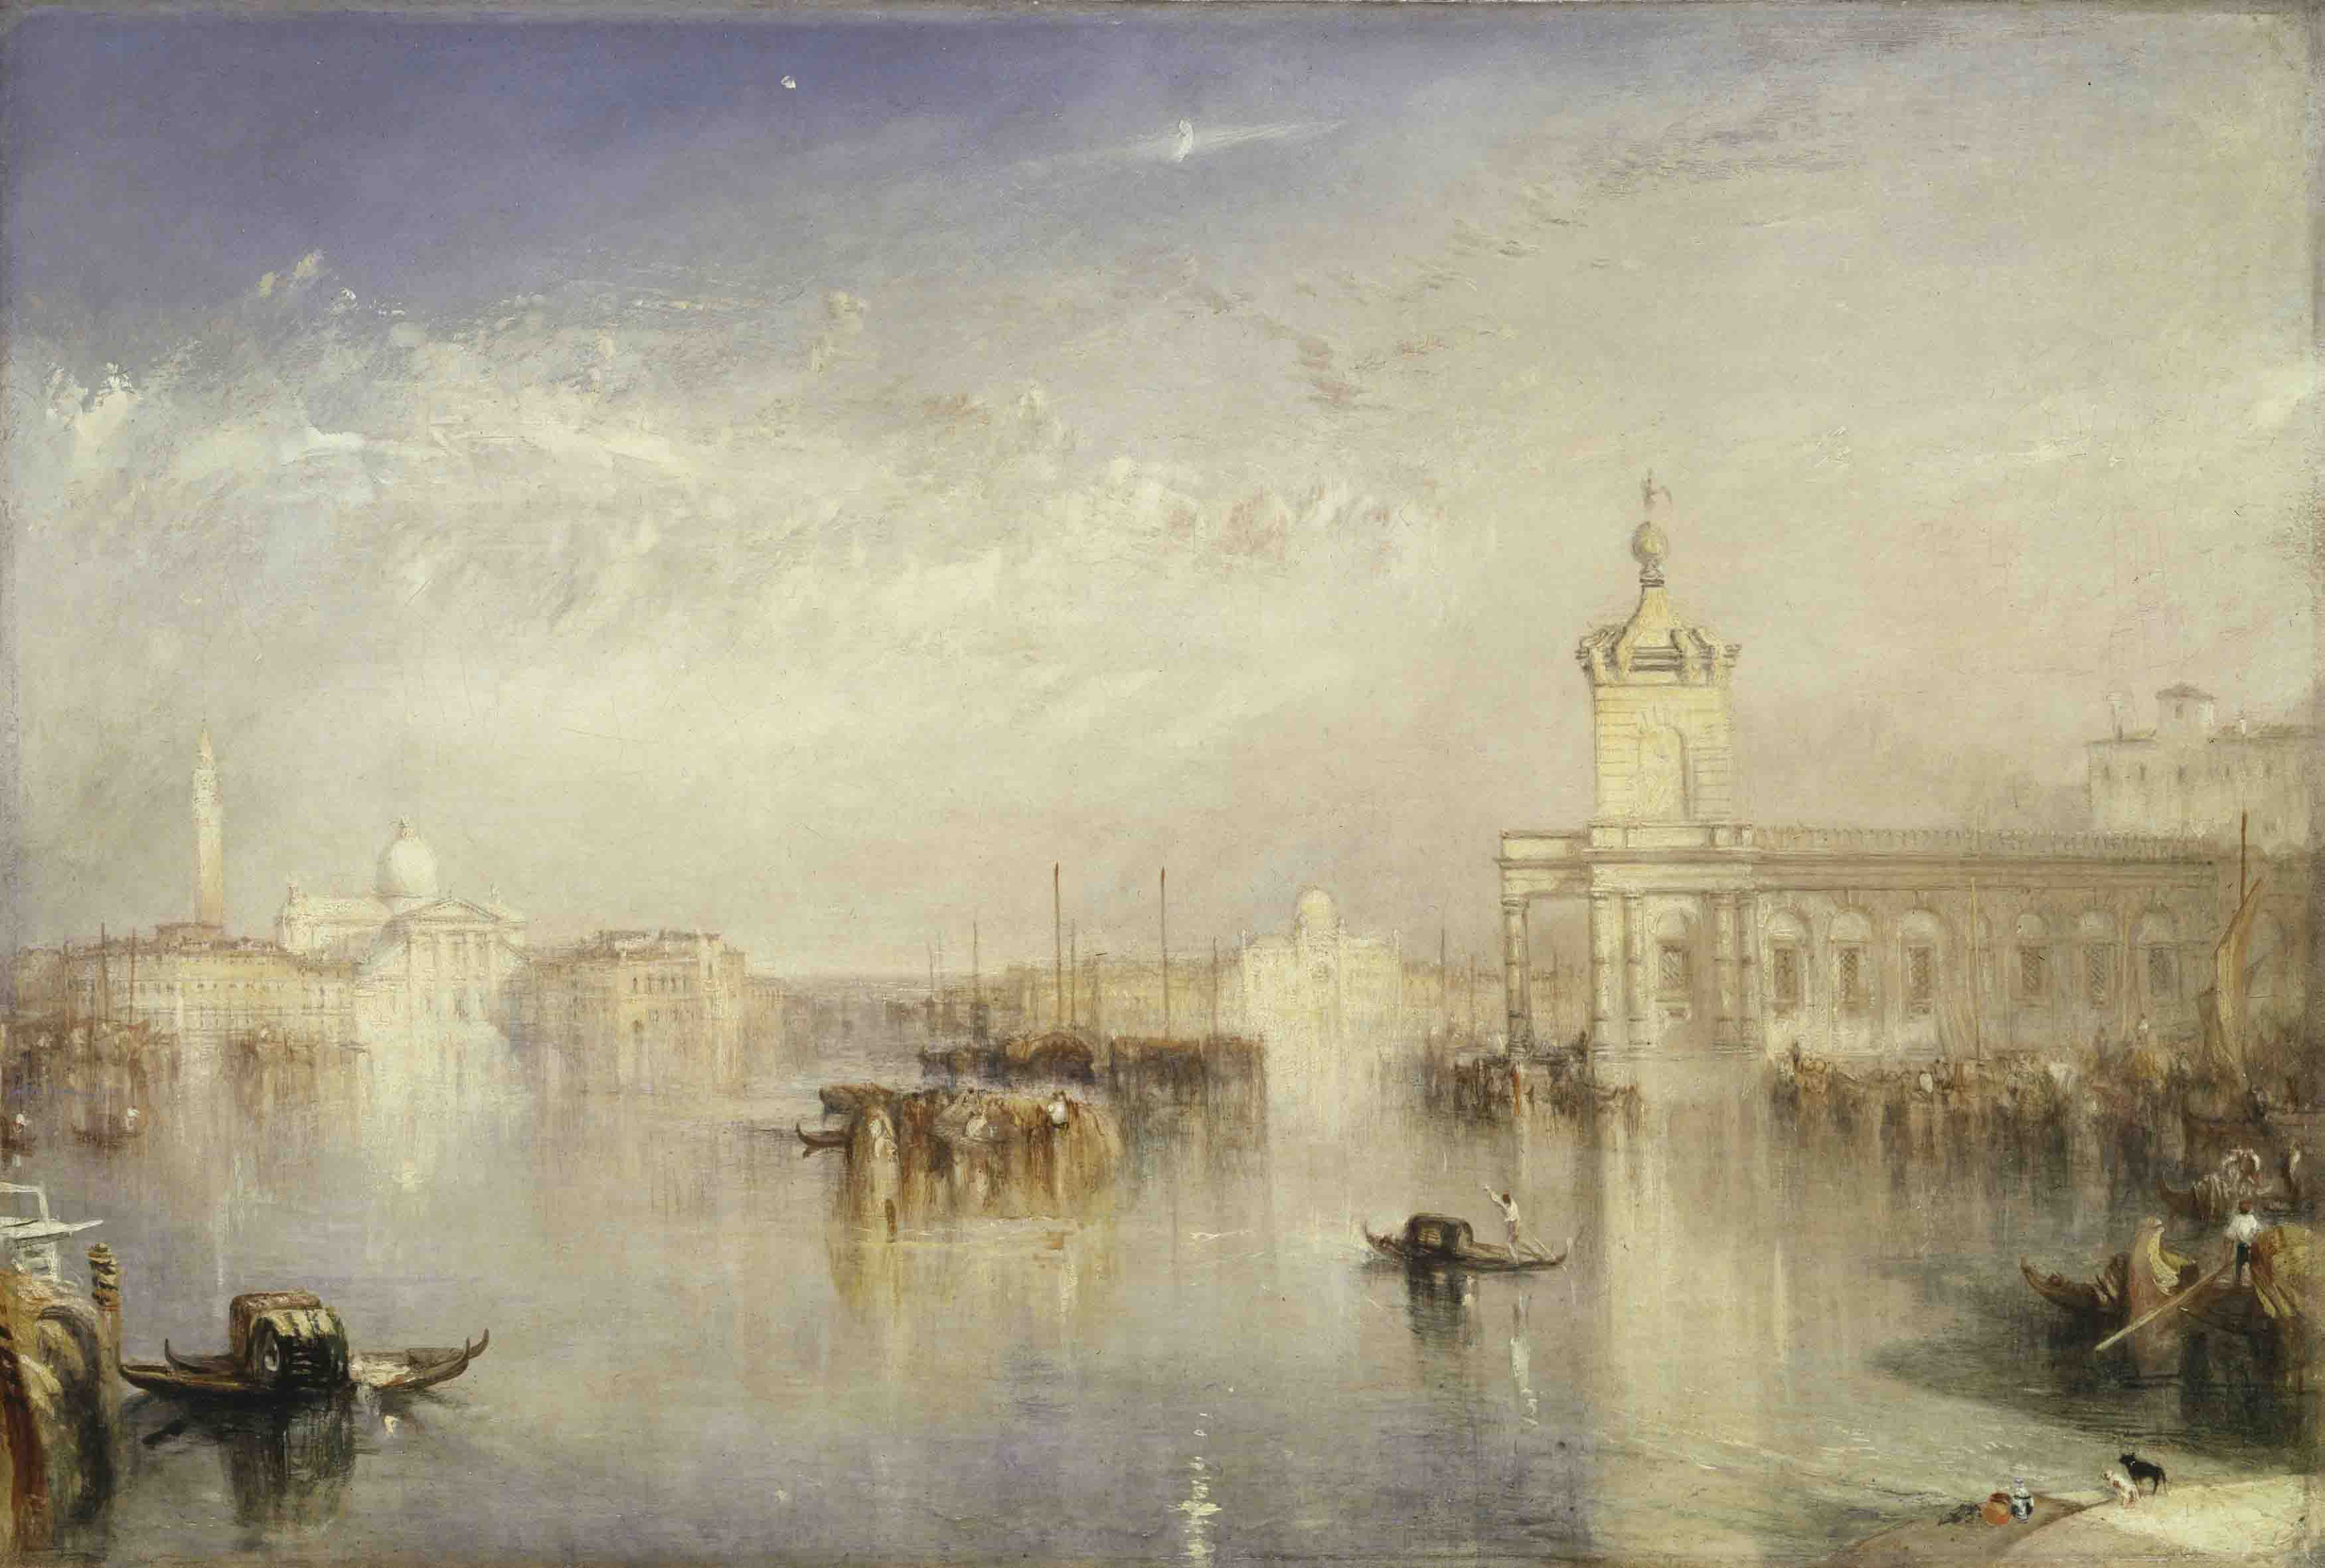 The Dogana, San Giorgio, J. M. W Turner, art